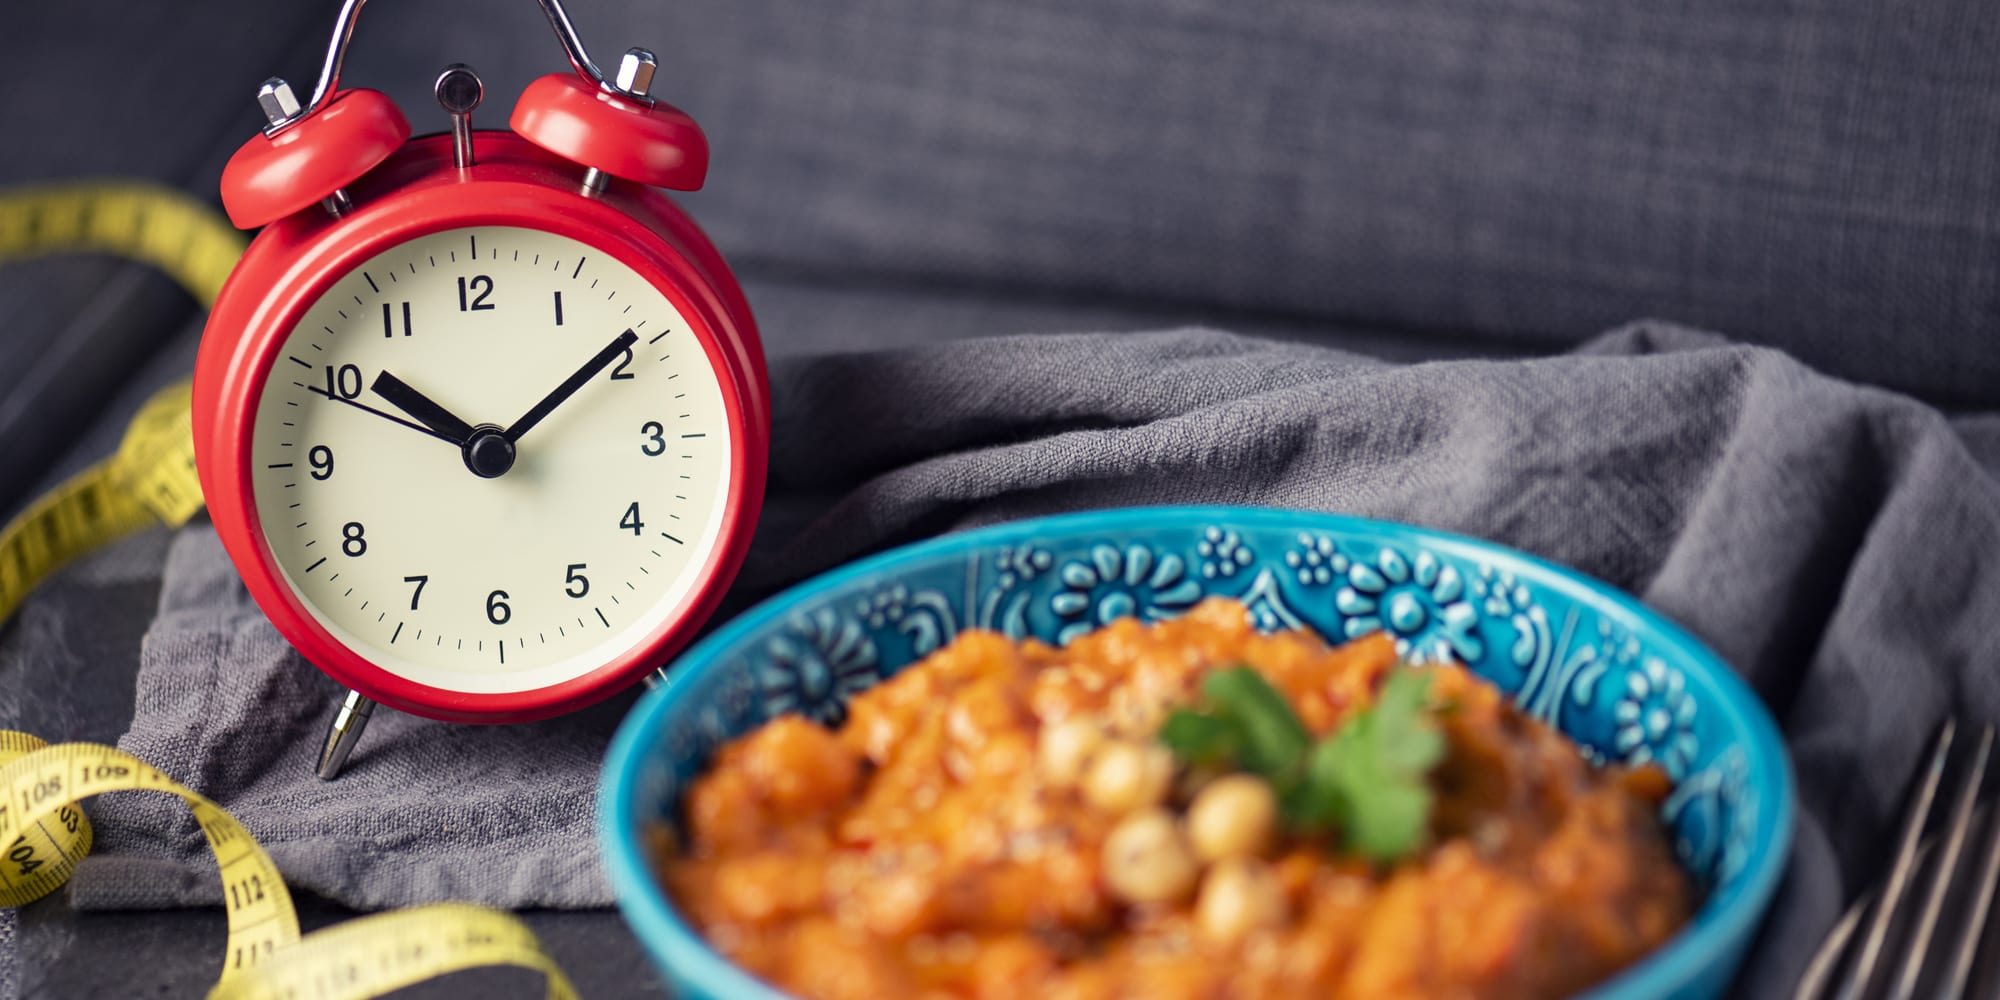 16/8 Fasting: Here's What You Should Know